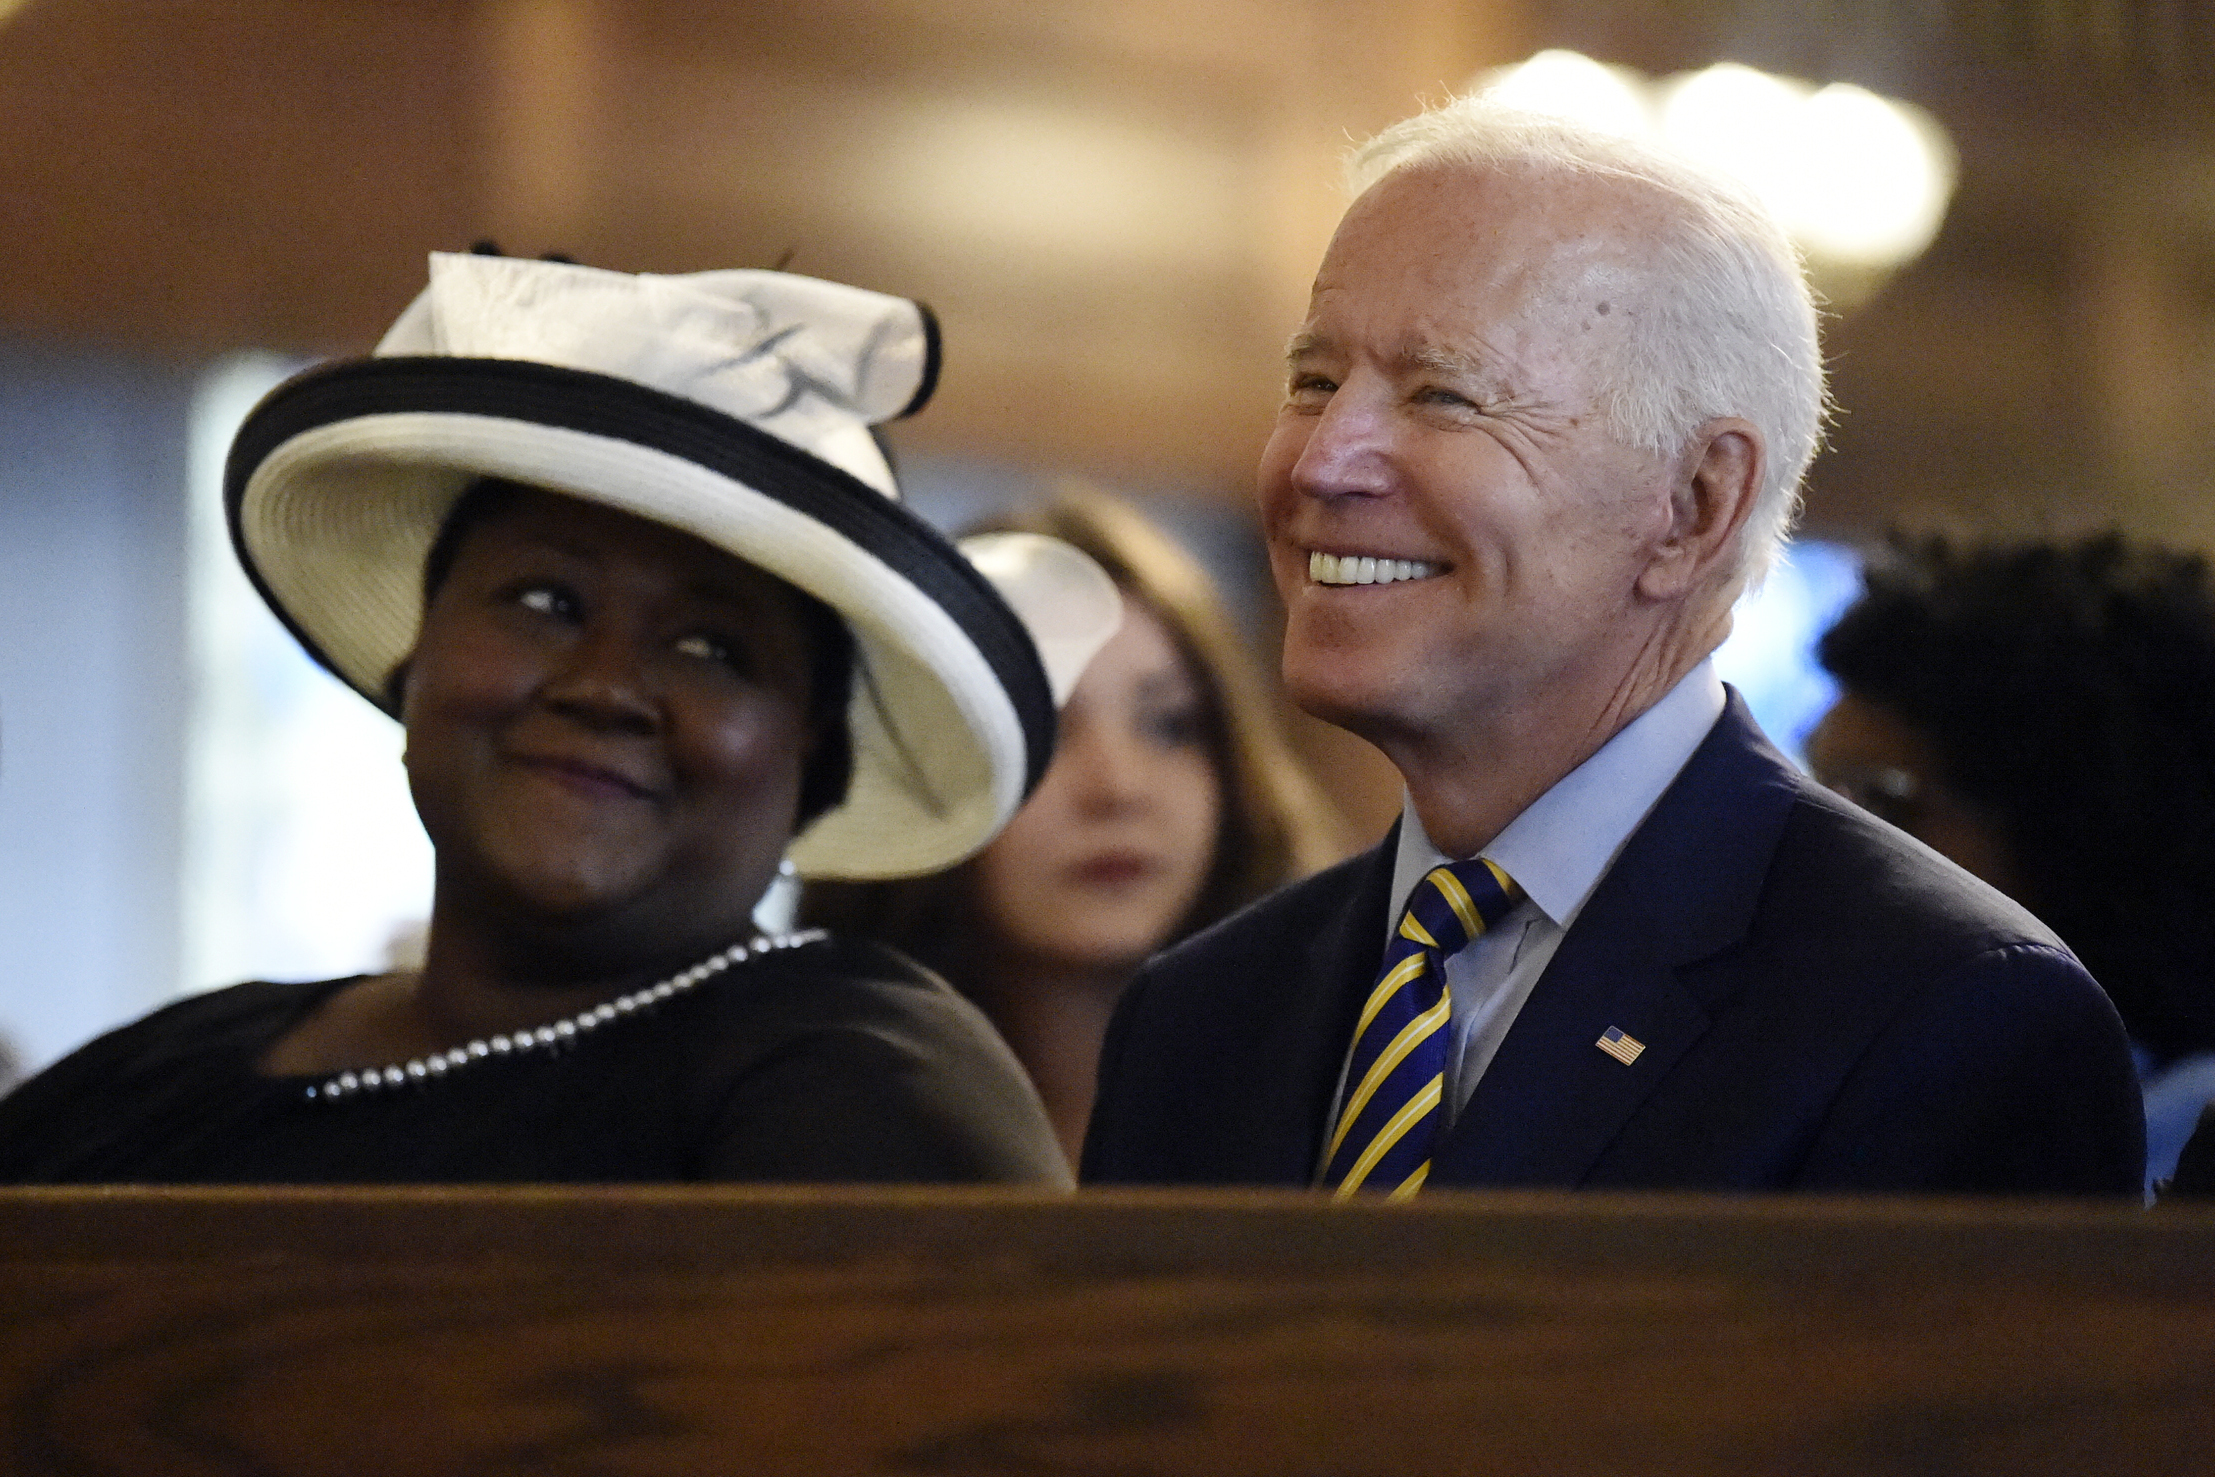 Biden says he picked South Carolina as spot for apology